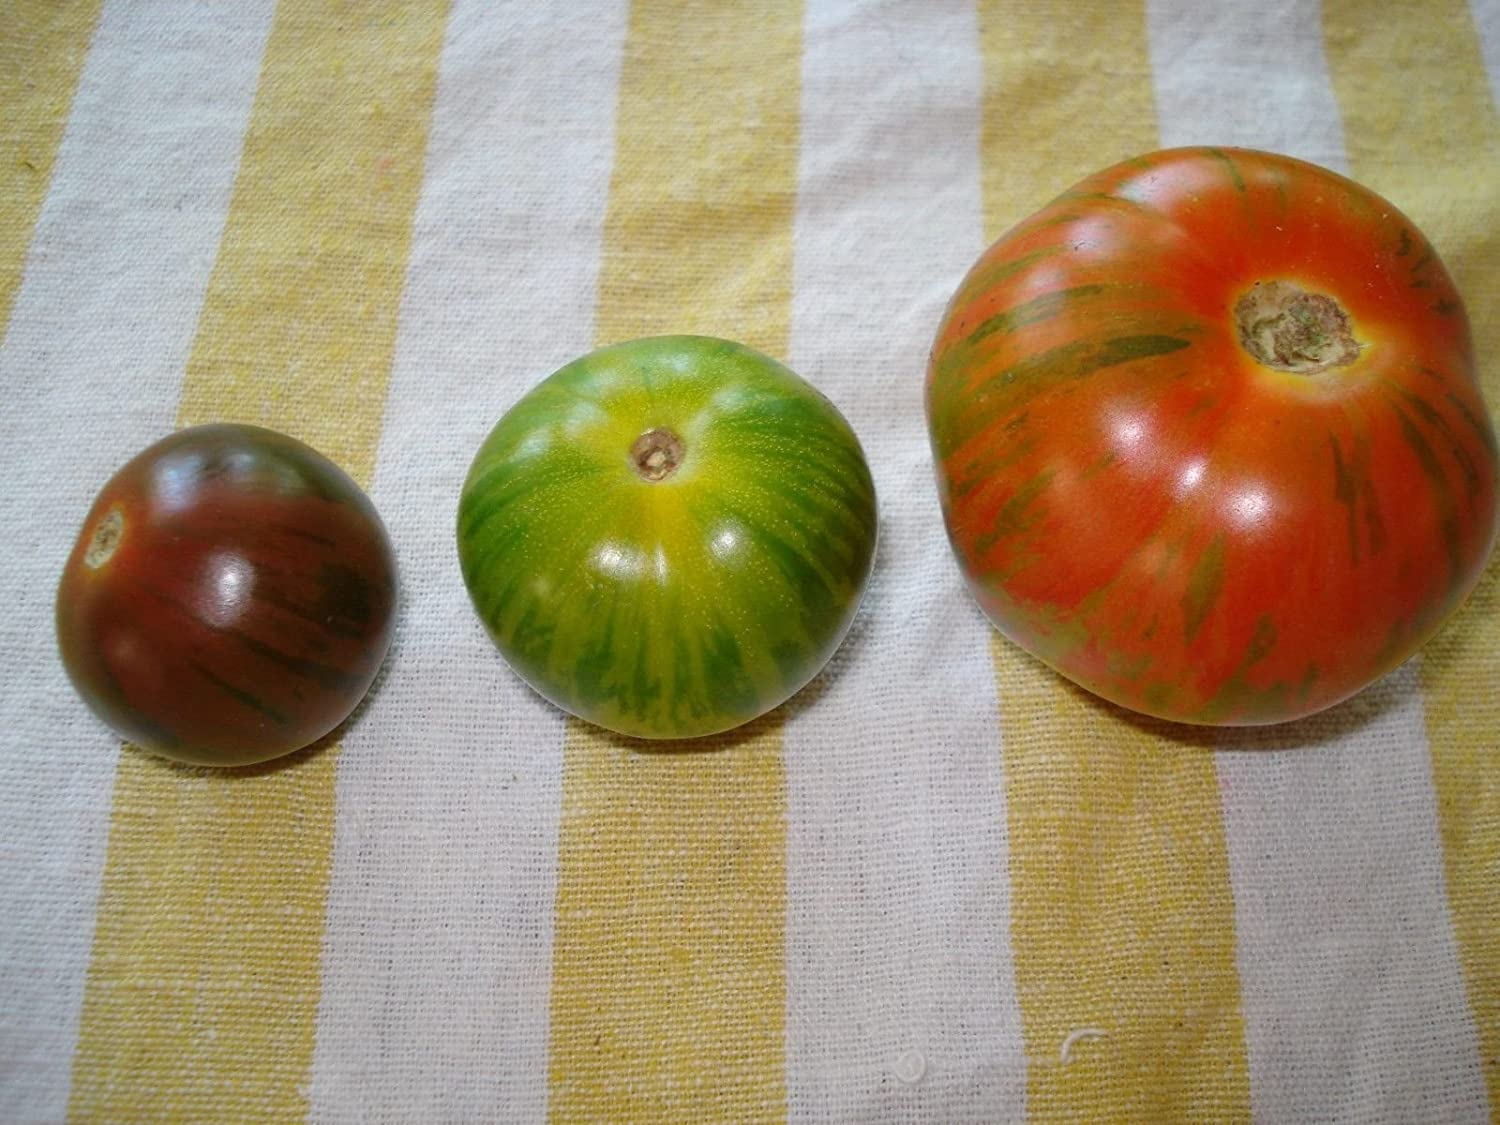 50 CHOCOLATE STRIPES TOMATO Brown with Green Lycopersicon Fruit Vegetable Seeds